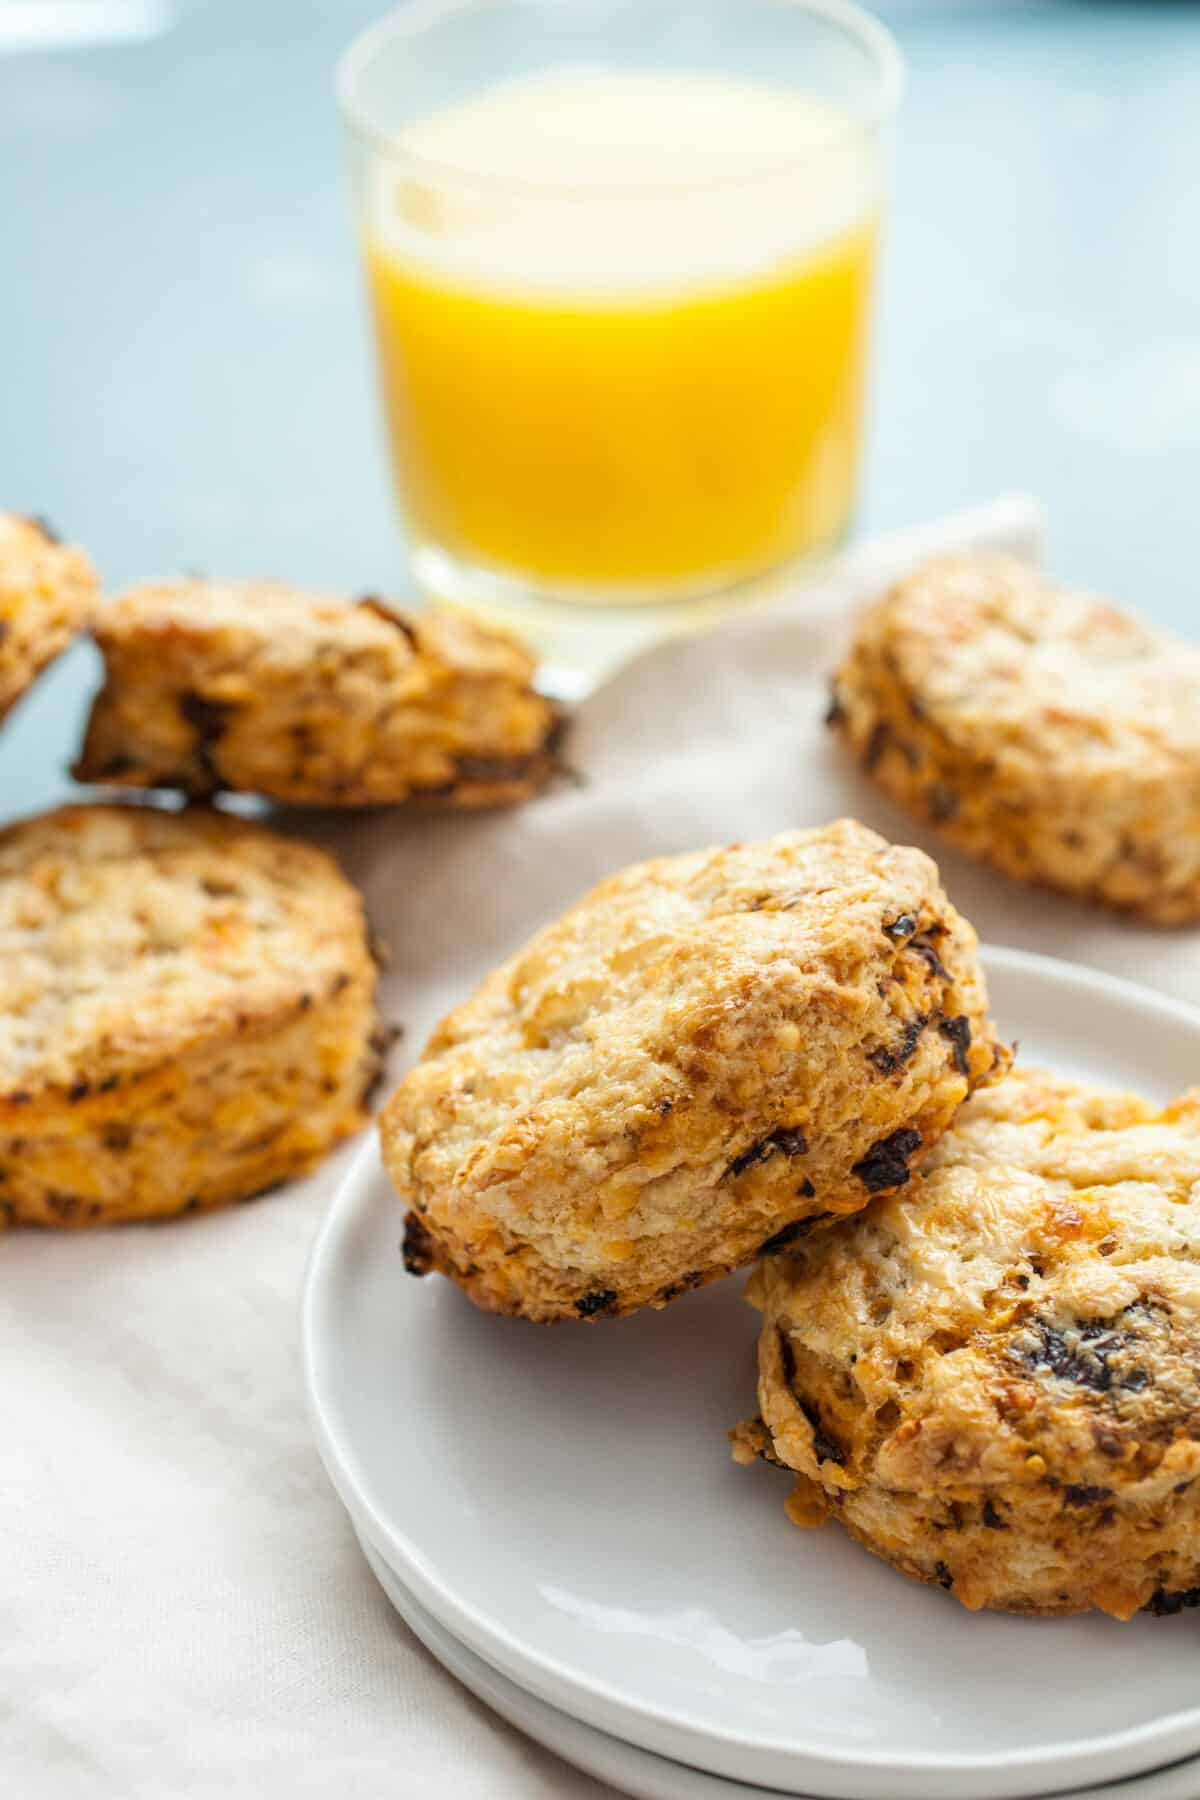 Sun-Dried Tomato Scones: These easy scones are packed with savory sun-dried tomatoes and cheddar cheese. Perfect for a spring brunch! | macheesmo.com